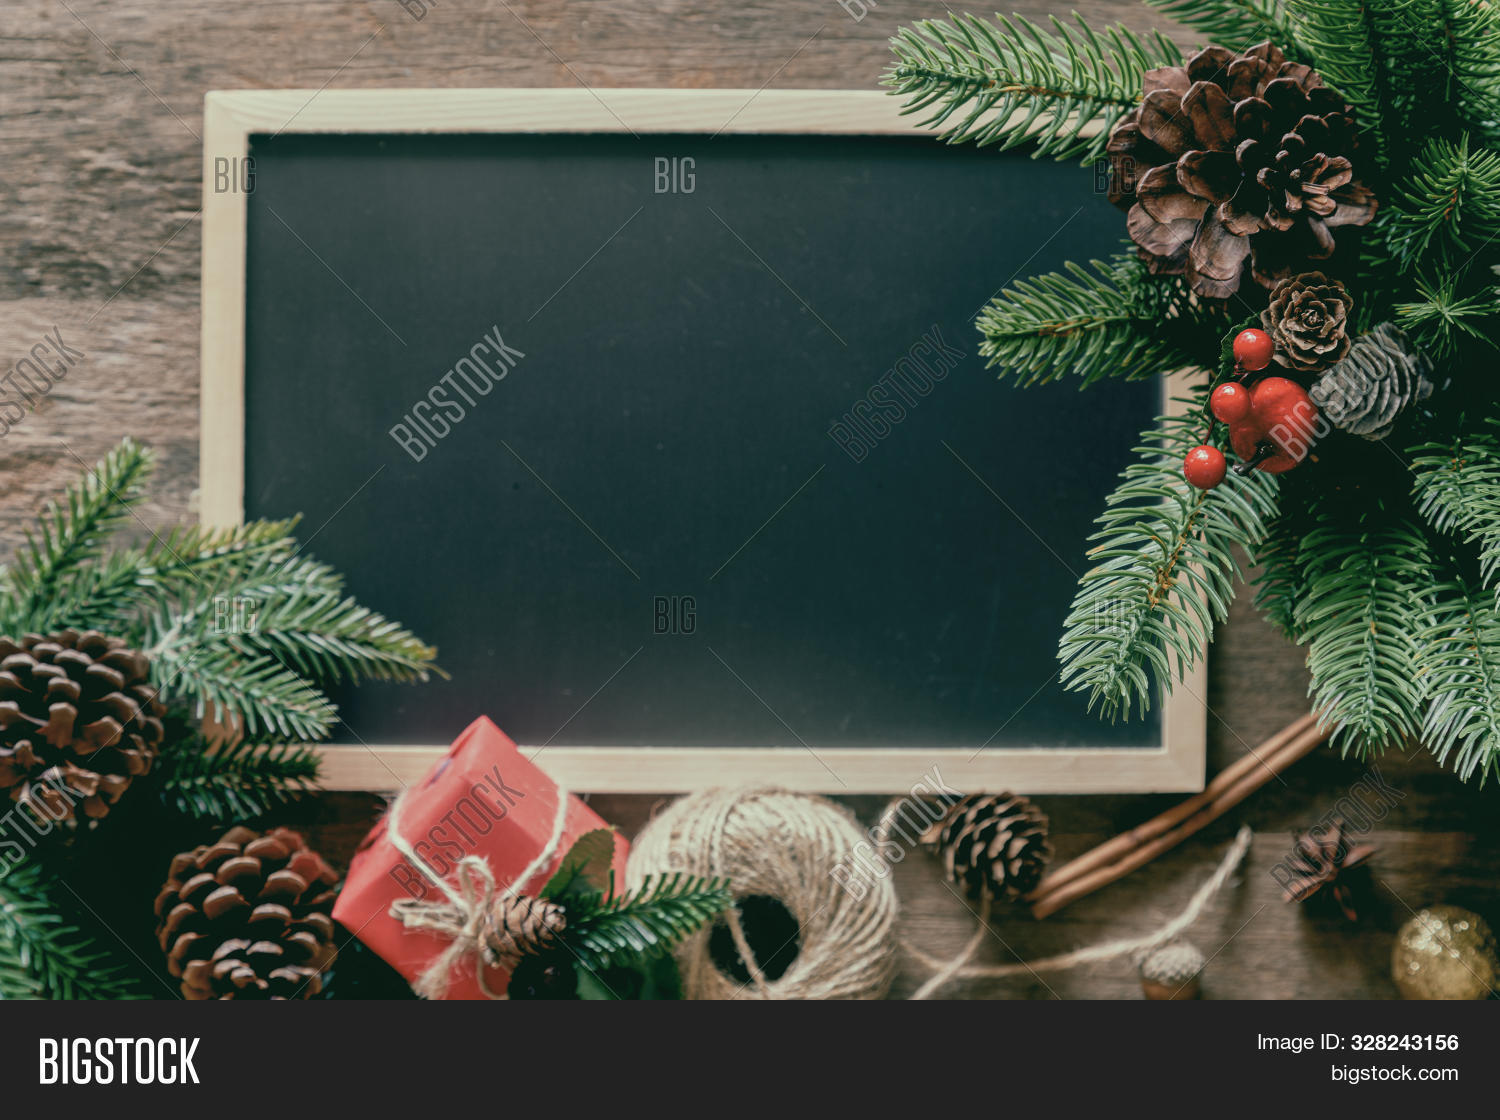 Christmas,abstract,backdrop,background,ball,beautiful,blackboard,blank,box,celebration,chalkboard,concept,cones,copy,cute,december,decoration,decorative,design,display,festival,flat,frame,gift,golden,green,greetings,happy,holiday,holly,lay,leaves,minimal,new,ornament,pine,plank,red,season,space,sweet,table,top,view,vintage,wallpaper,winter,wood,xmas,year